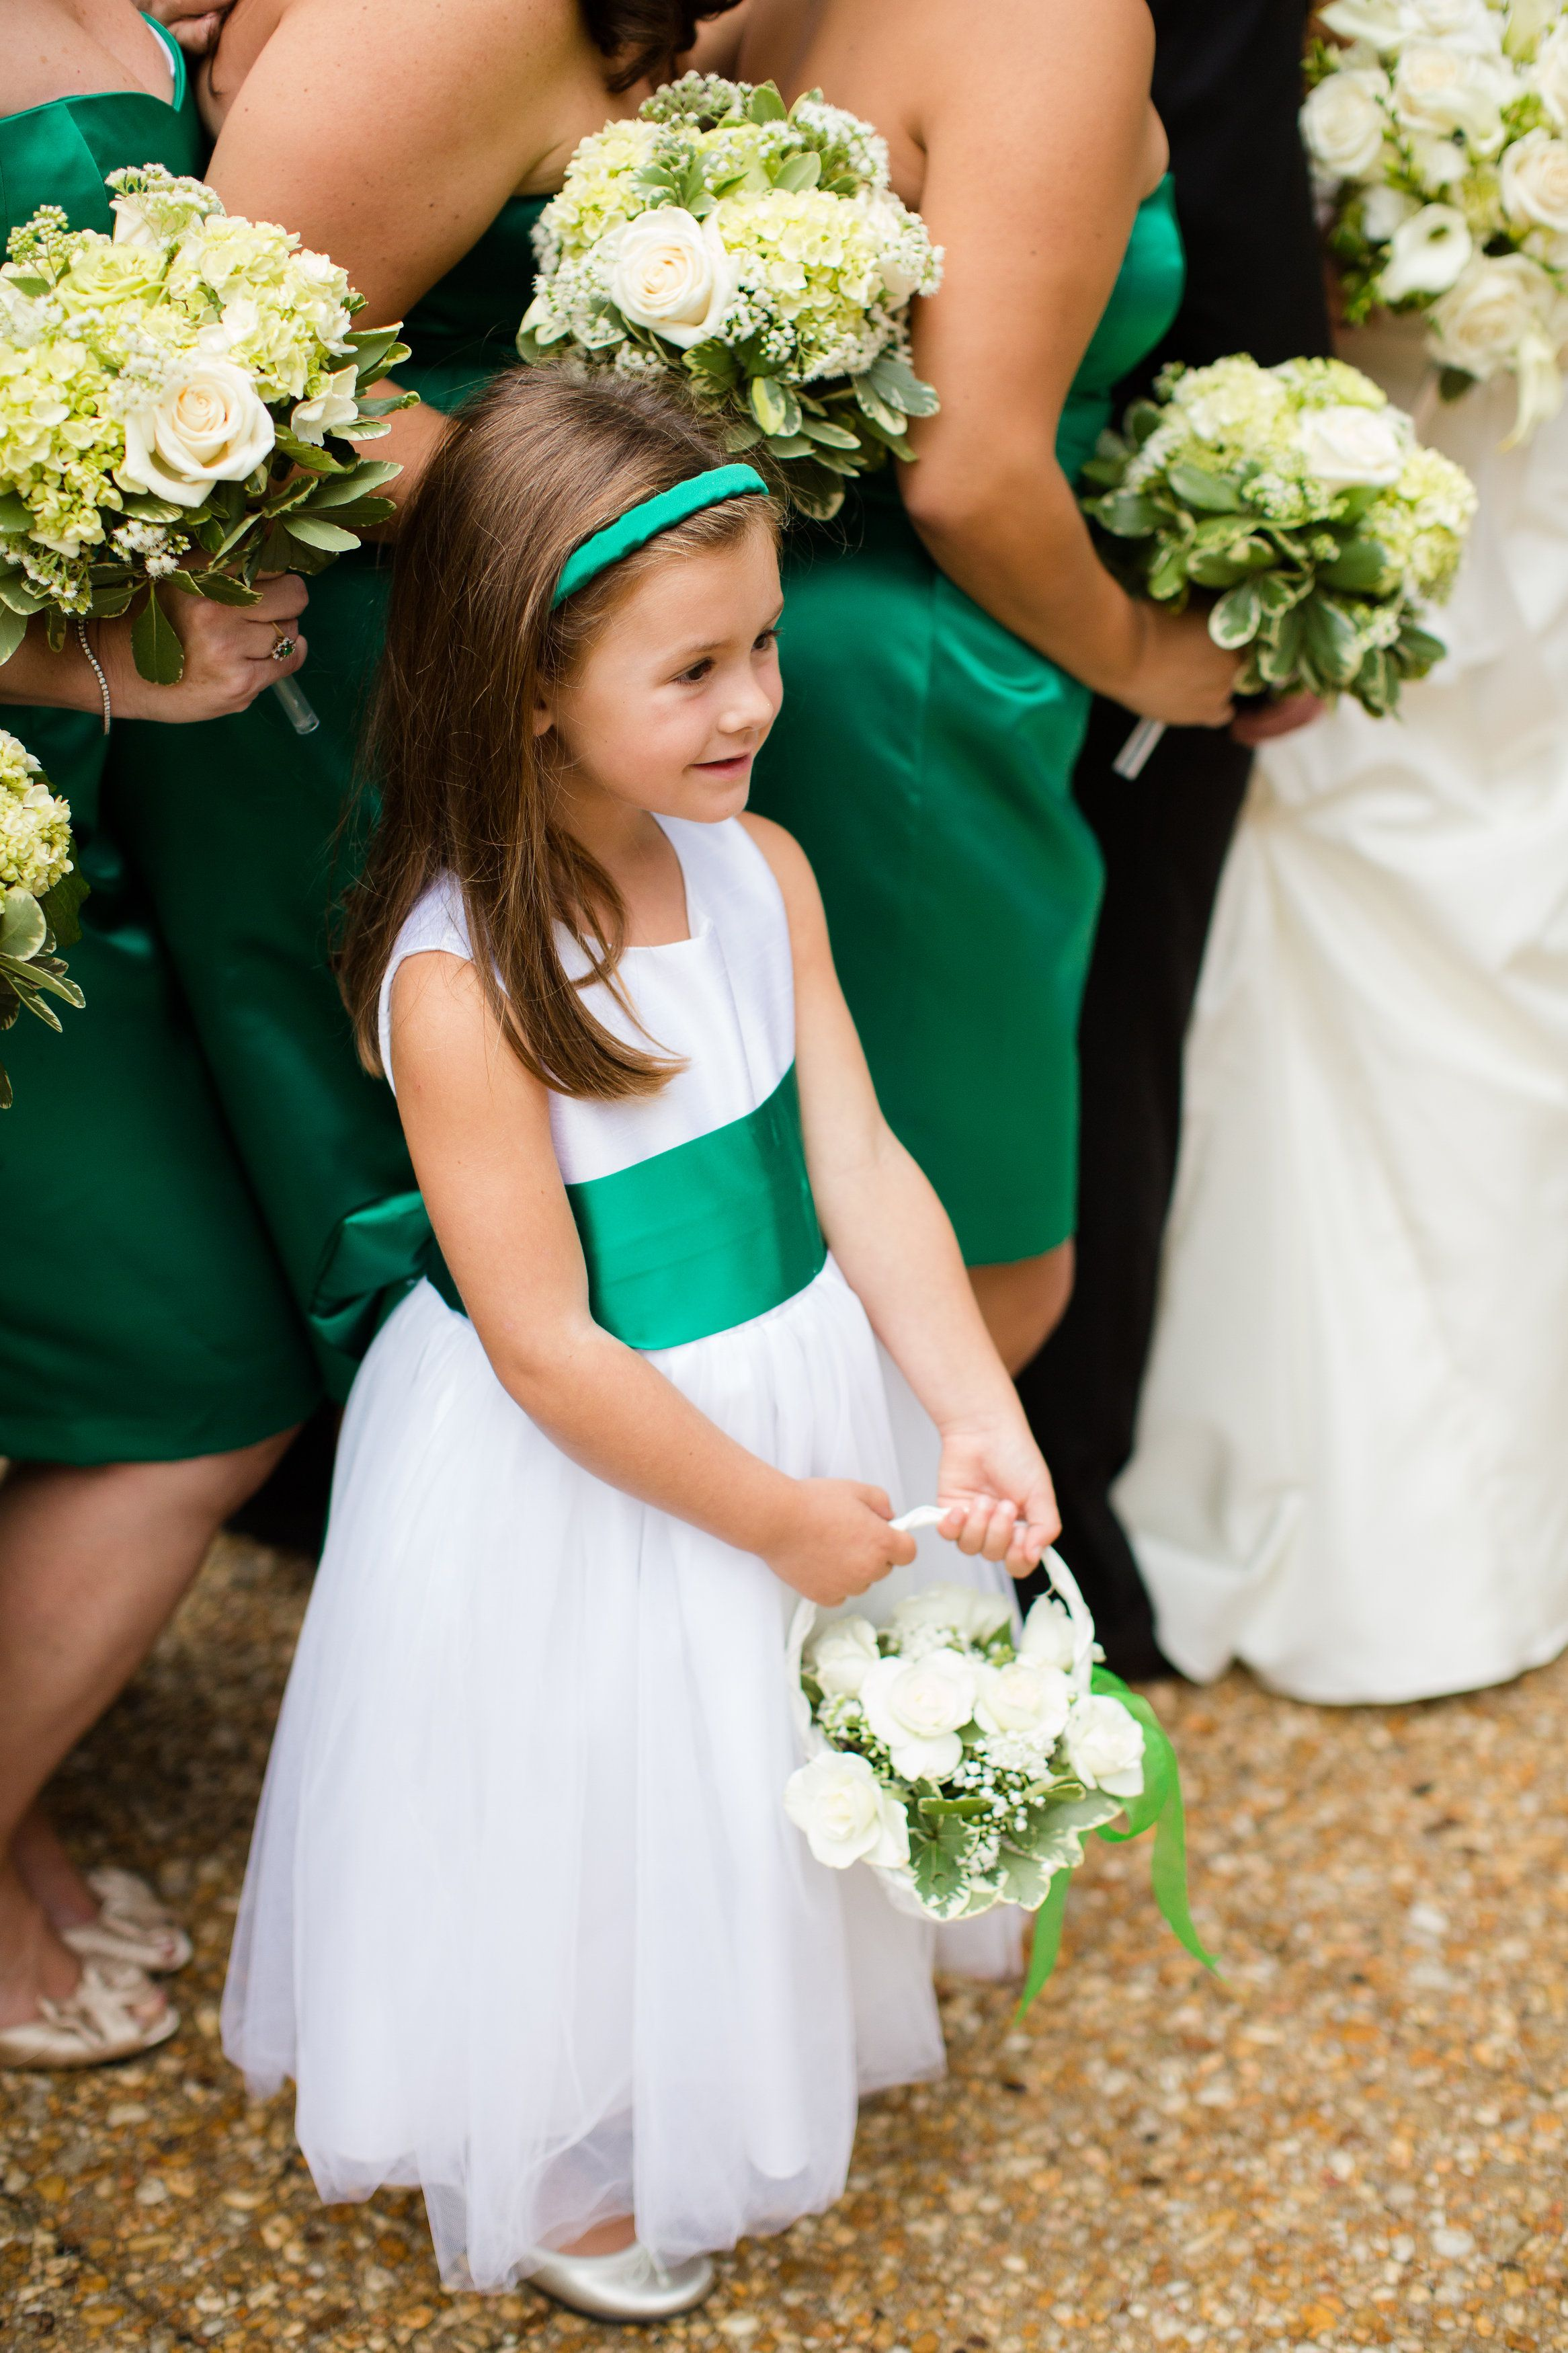 An emerald green sash for the flower girl to match the bridesmaid dresses